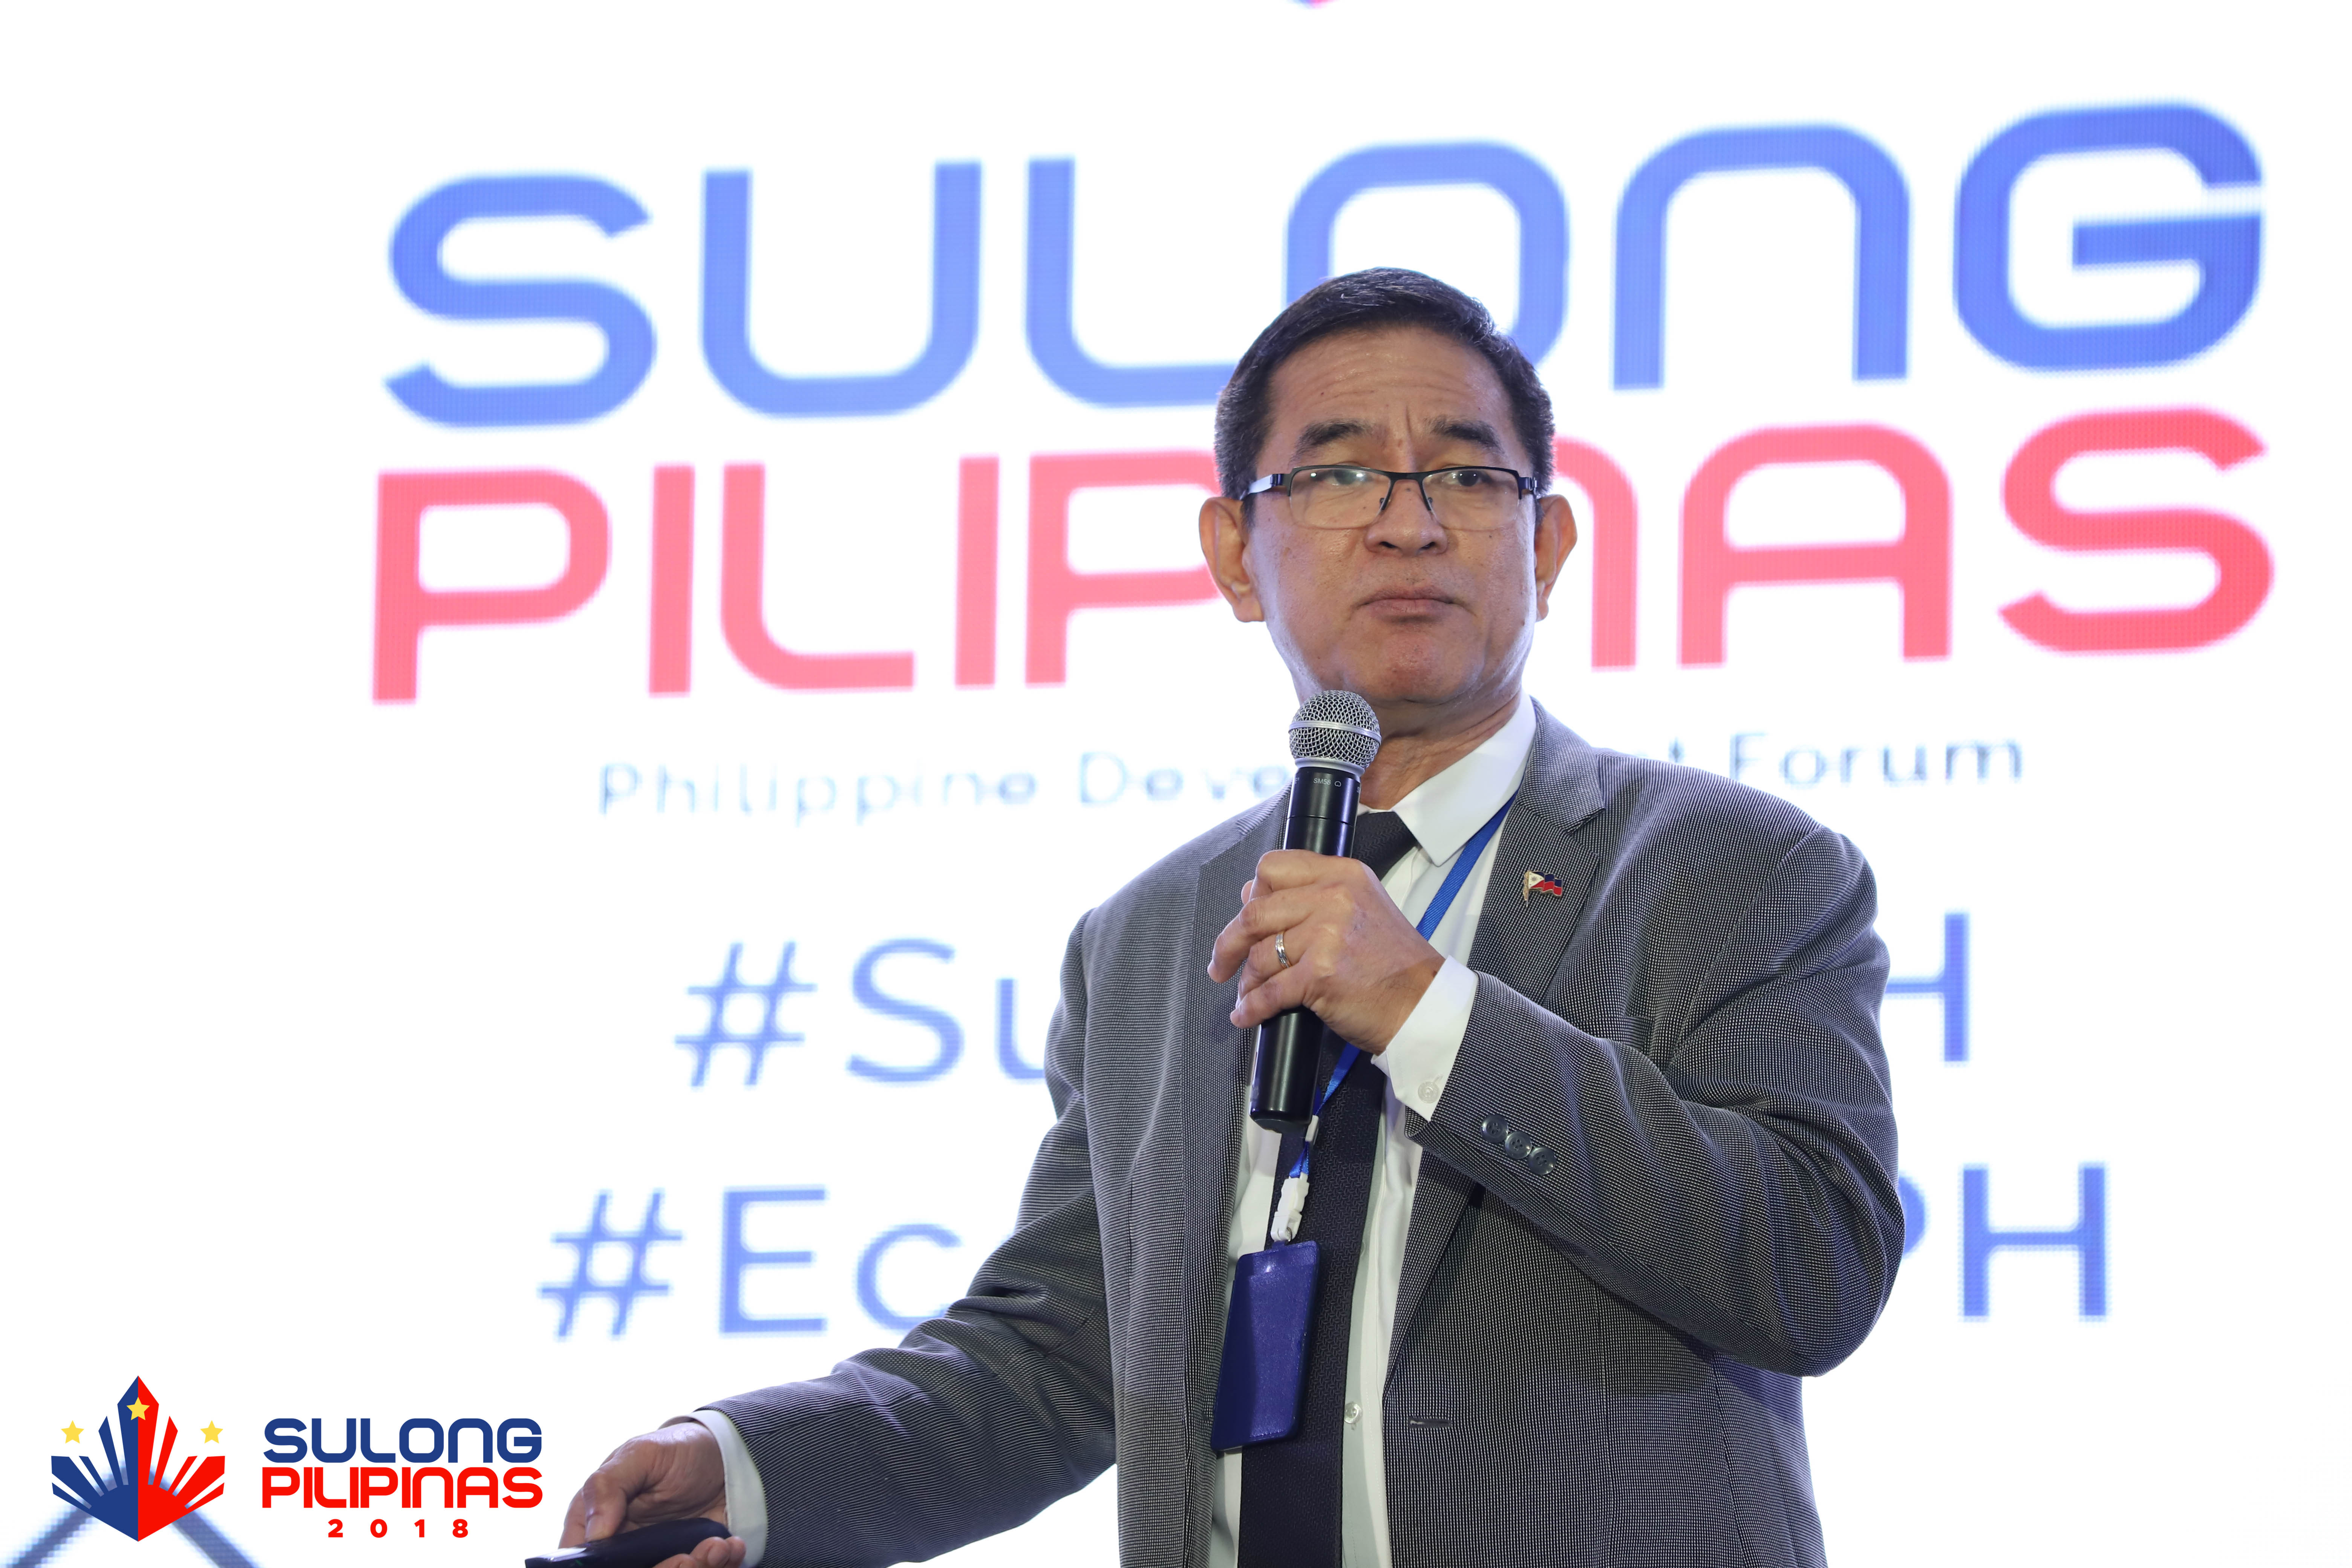 Over 1,000 entrepreneurs take part in 'Sulong' regional forums